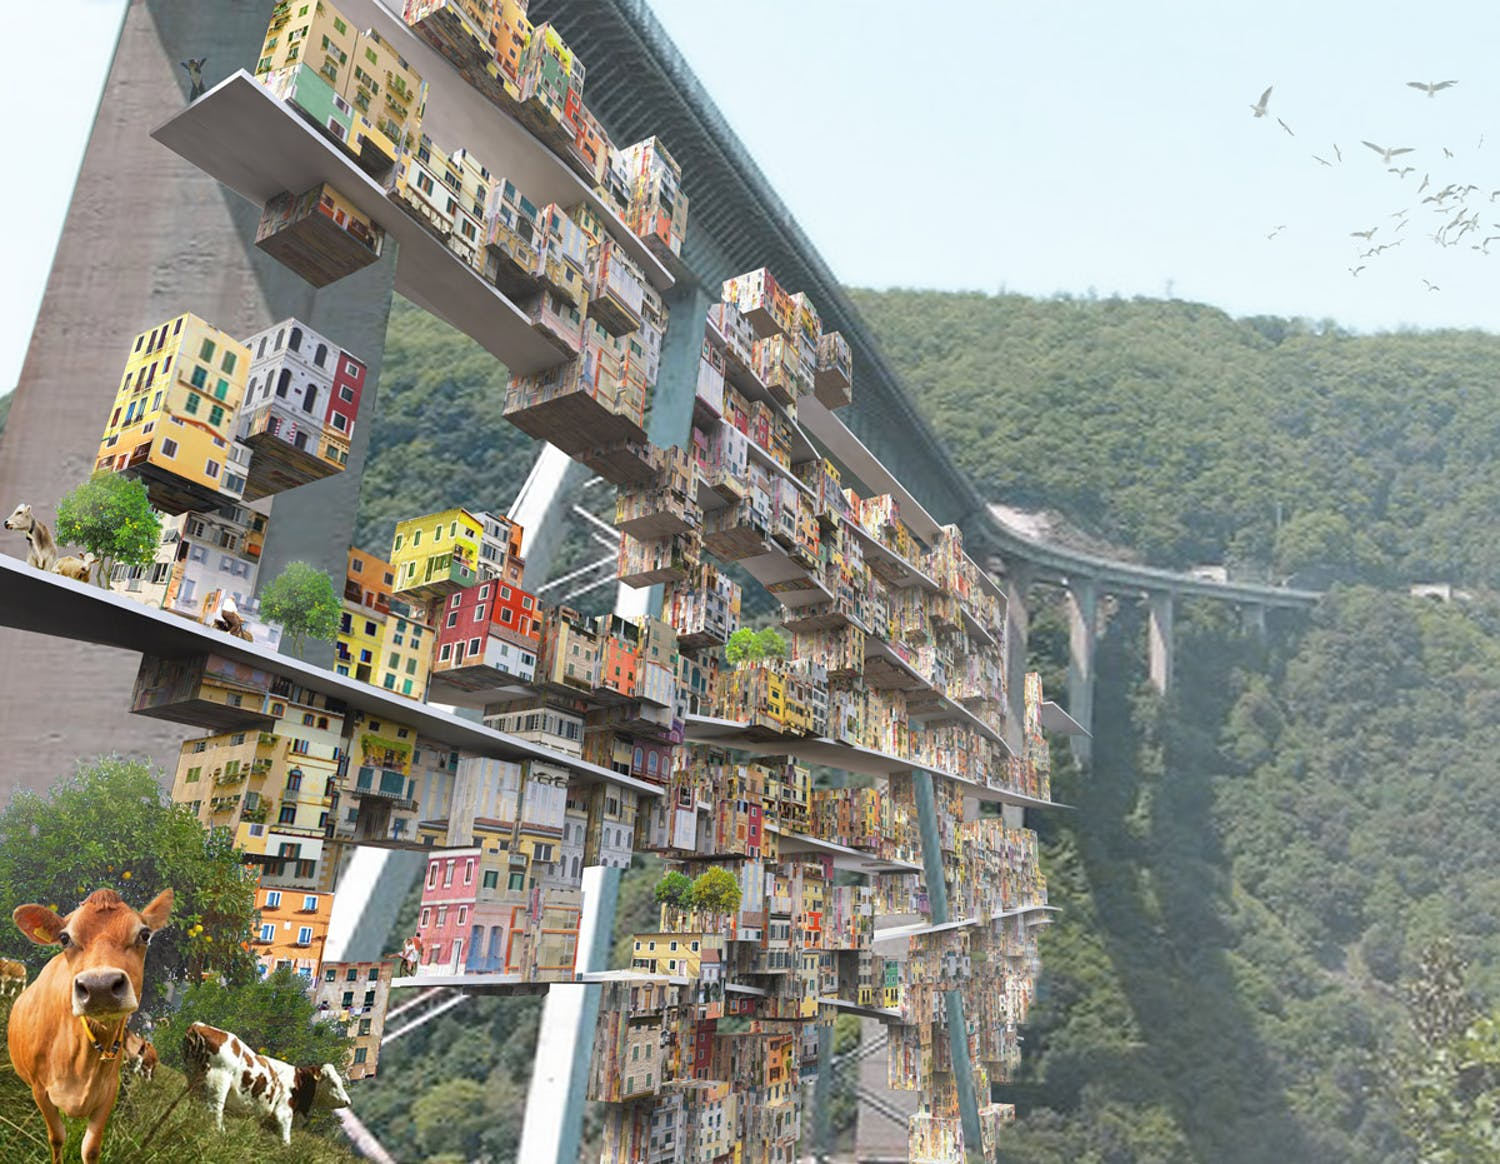 parasitic city italian highway bridge